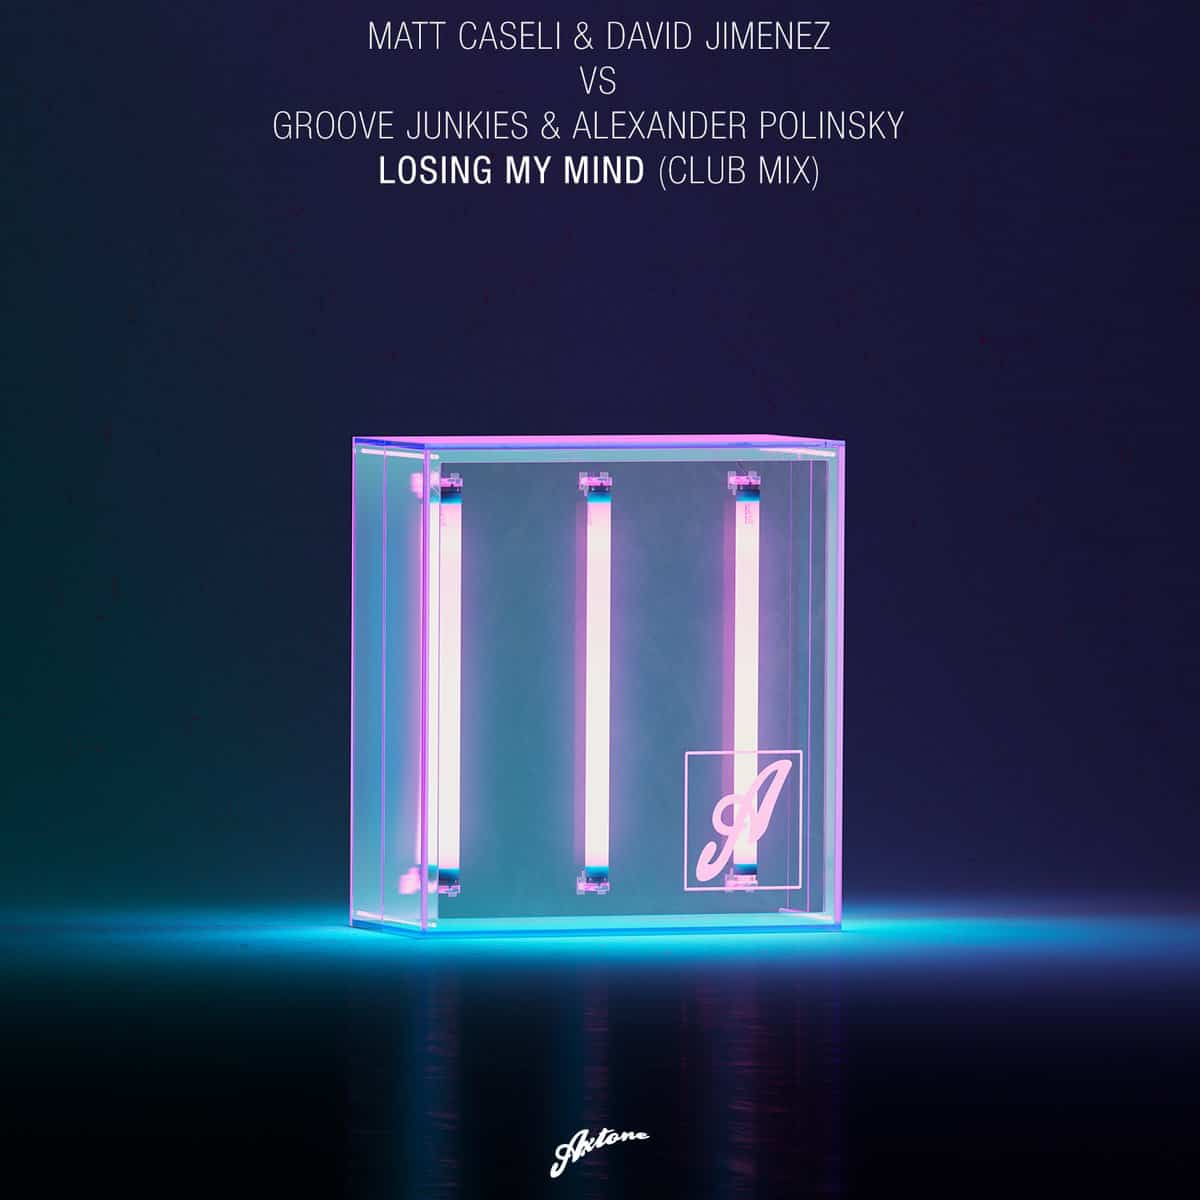 Matt Caseli returns to Axtone with Groove Junkies, David Jimenez and Alexander Polinsky